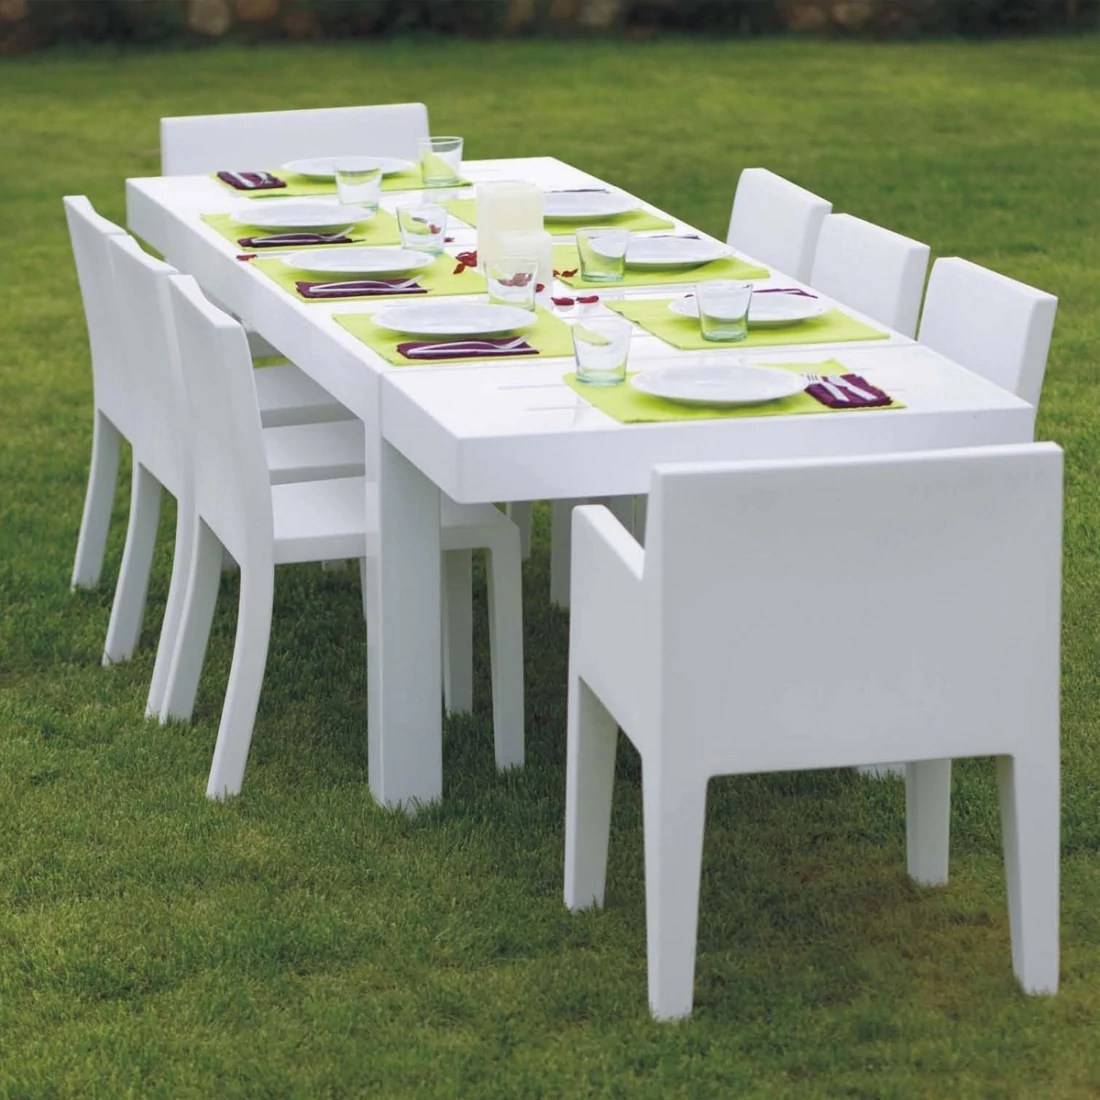 Table Carrée 10 Personnes Table De Jardin Design 10 Personnes Jut Par Vondom